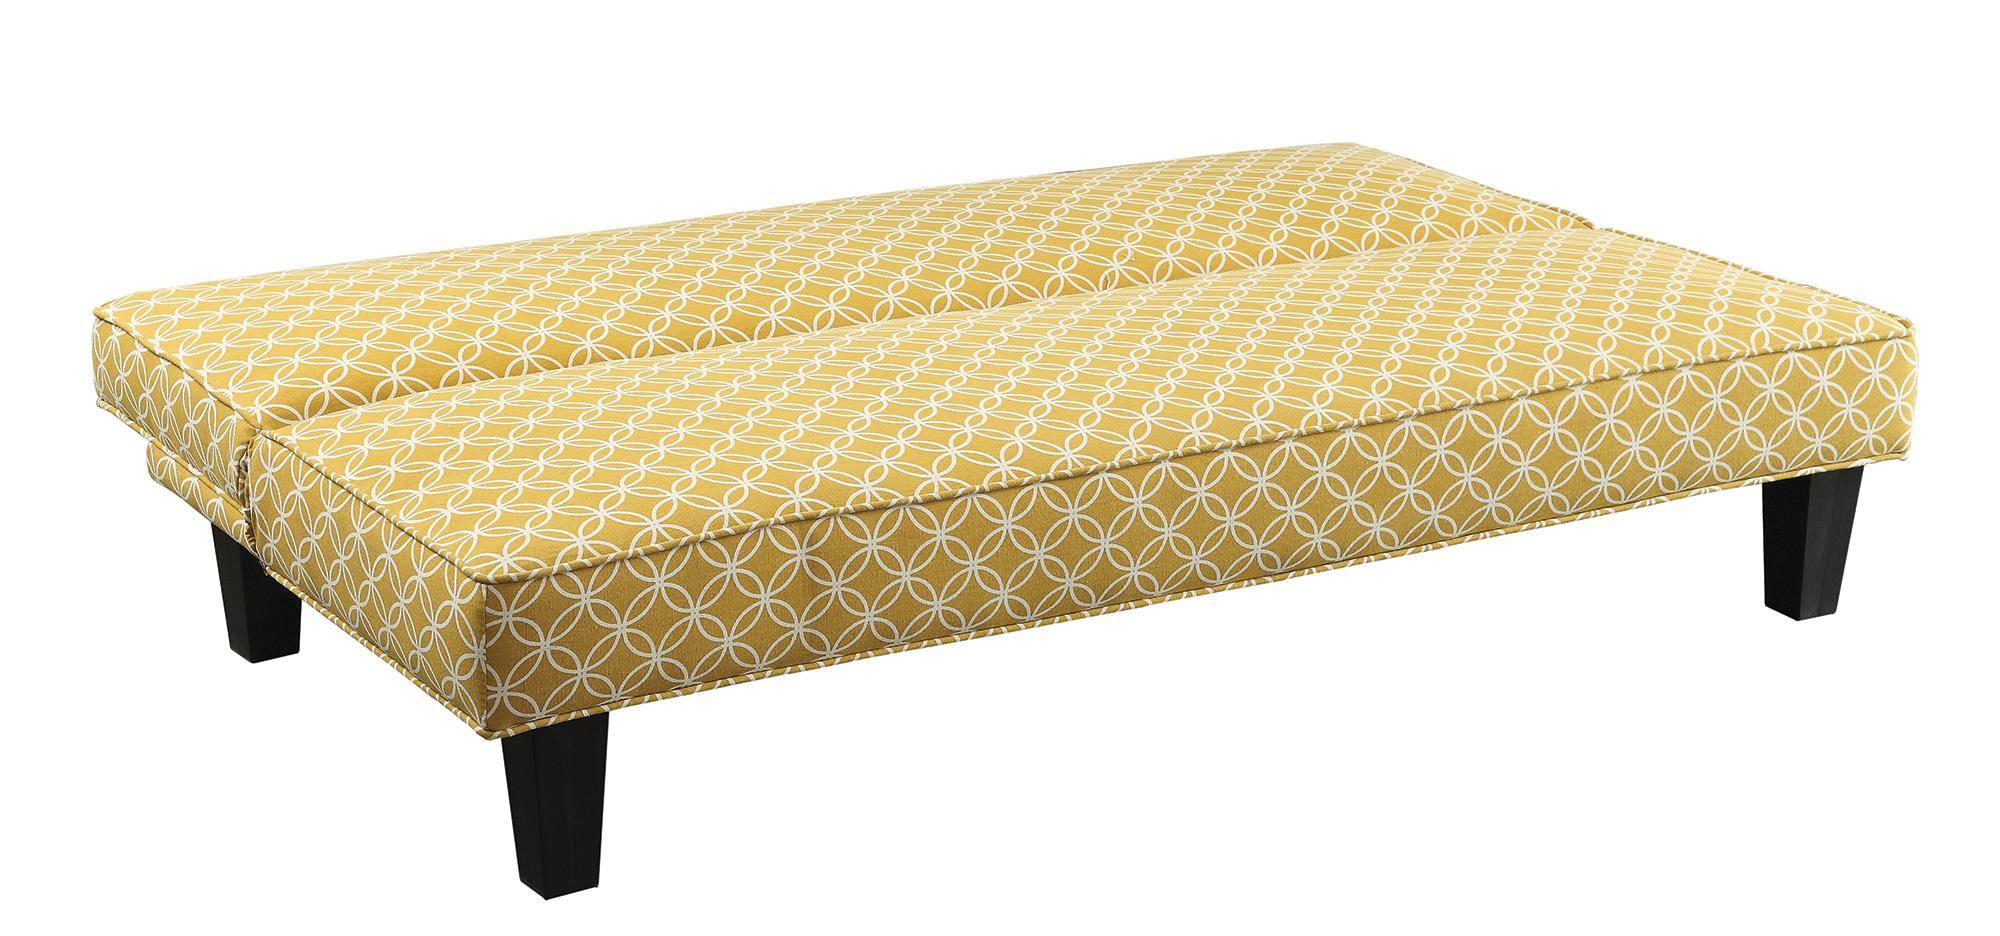 Futons Sofa Bed with Trellis Pattern Fabric Quality  : products coaster color futons coaster500166 b1 from furniturewares.com size 2000 x 936 jpeg 222kB